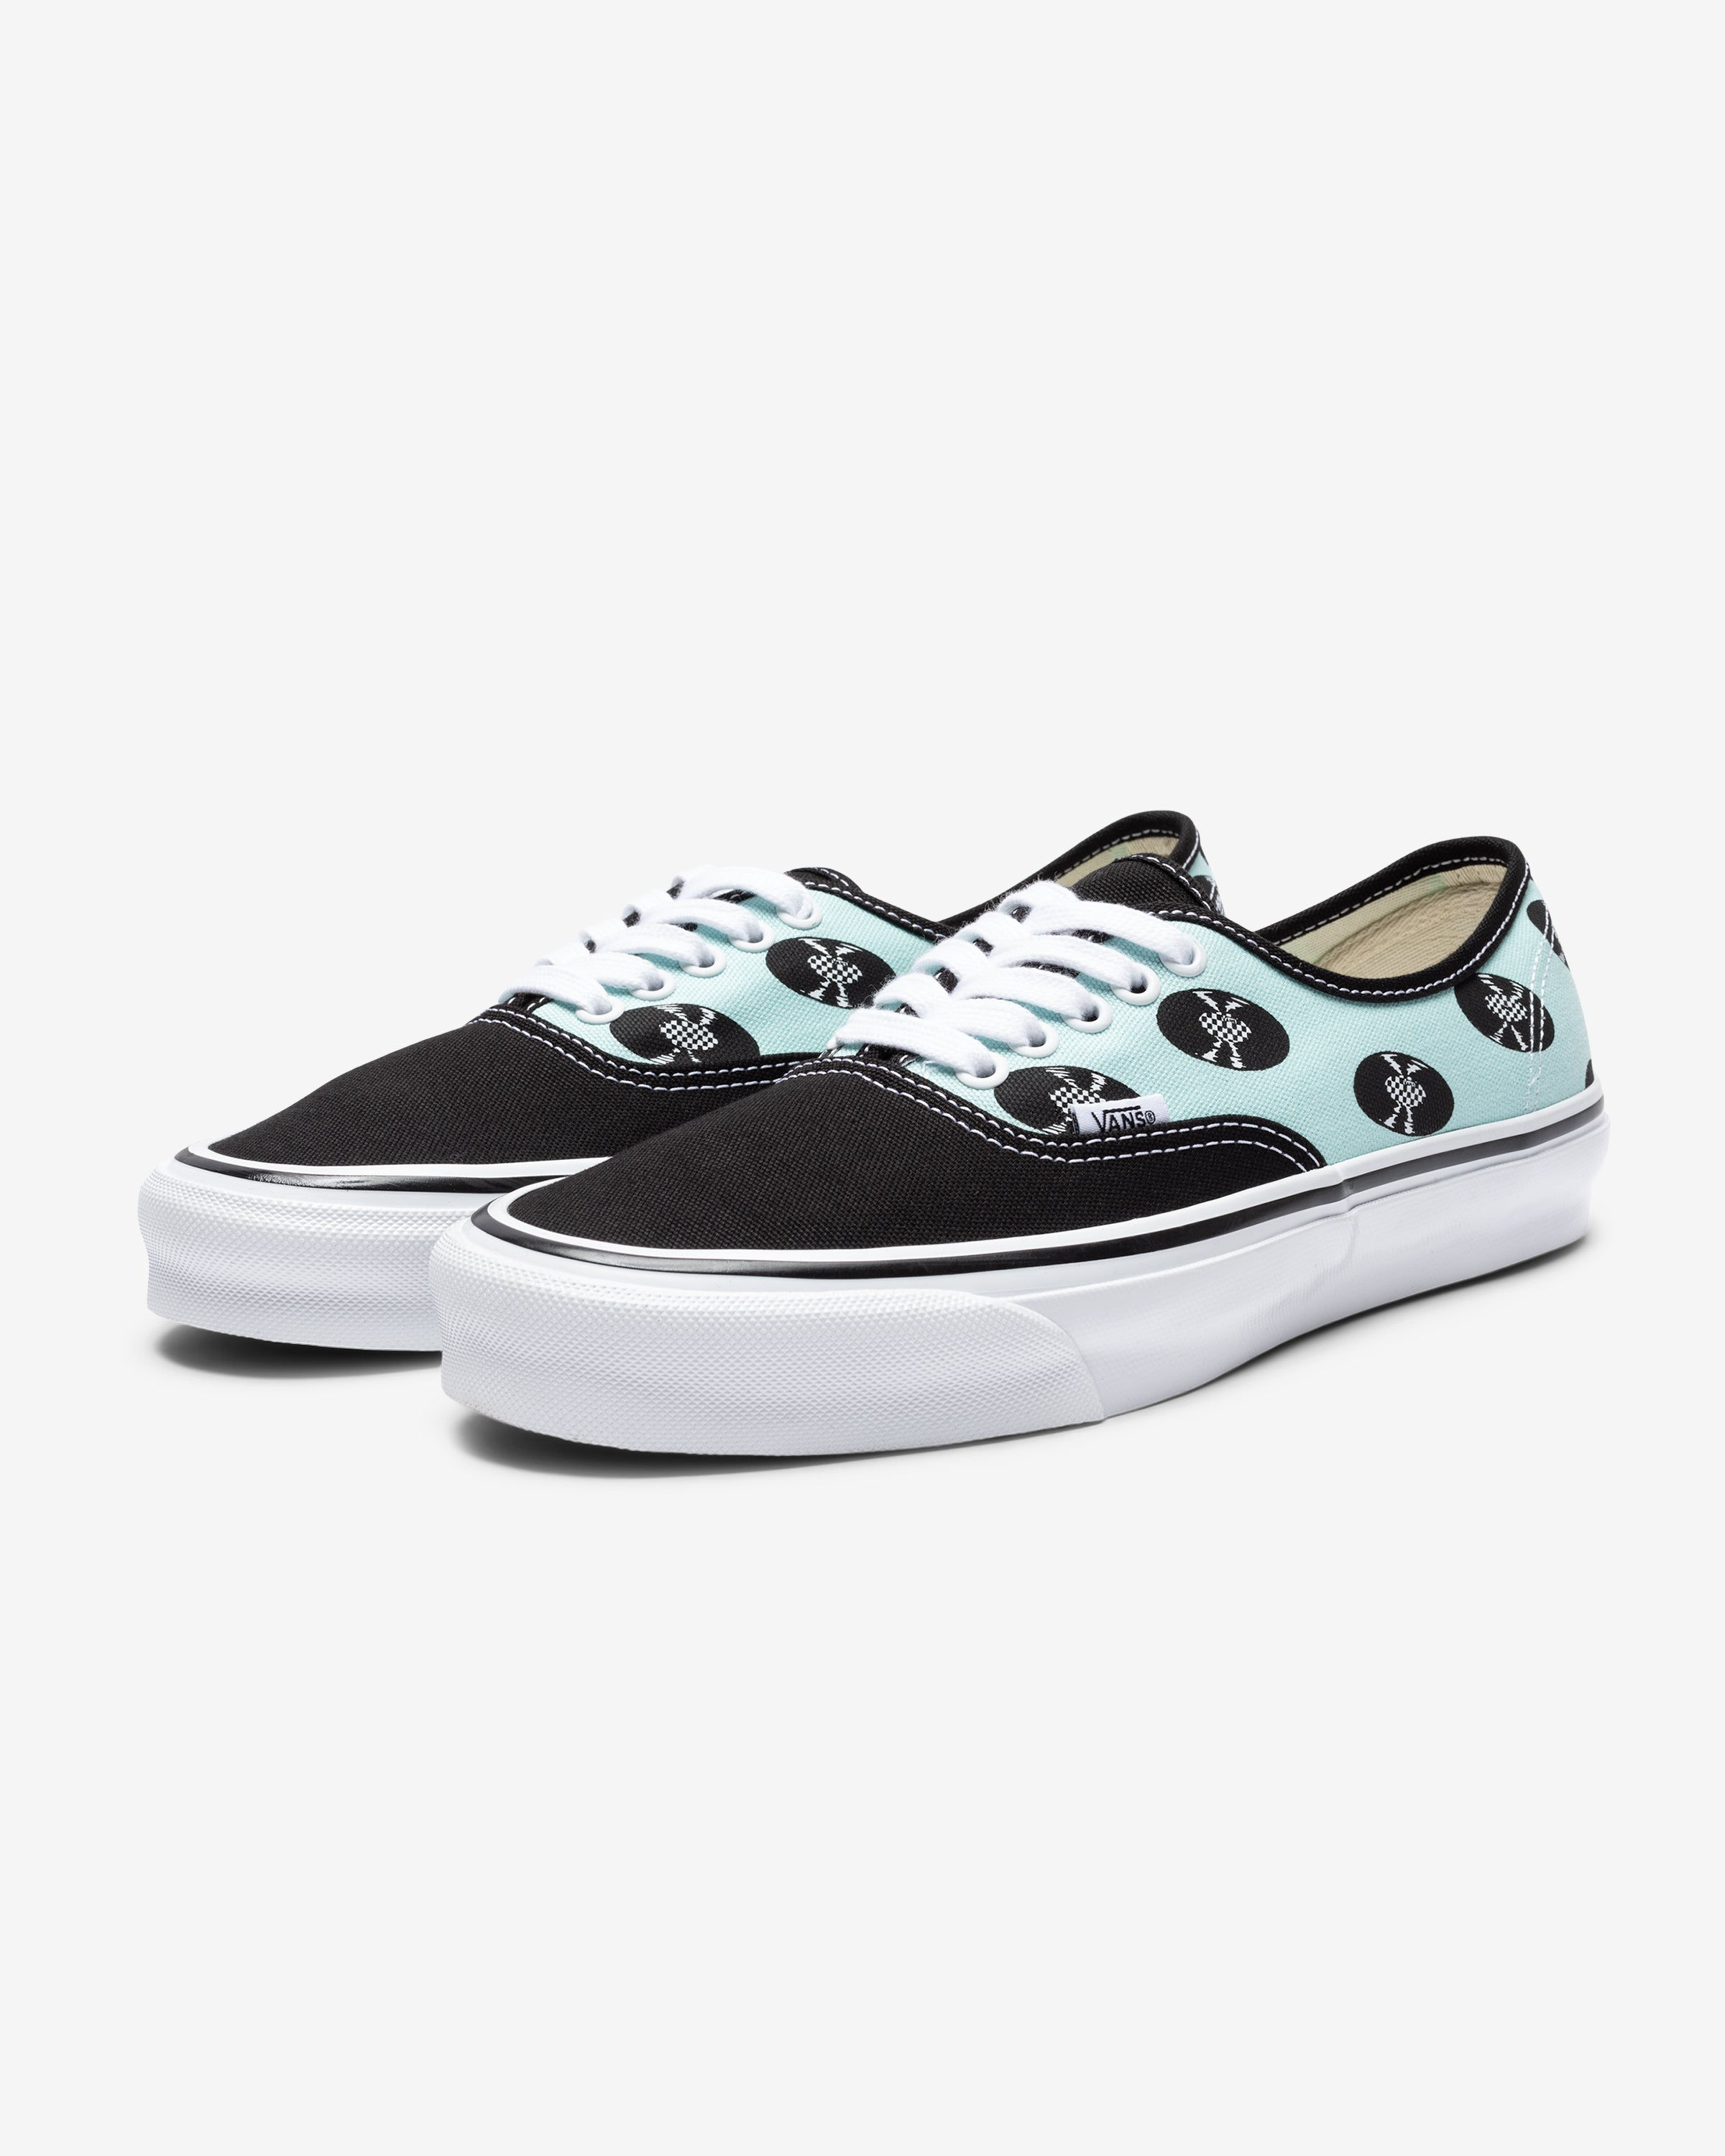 VANS X WACKO MARIA OG AUTHENTIC LX - BAB